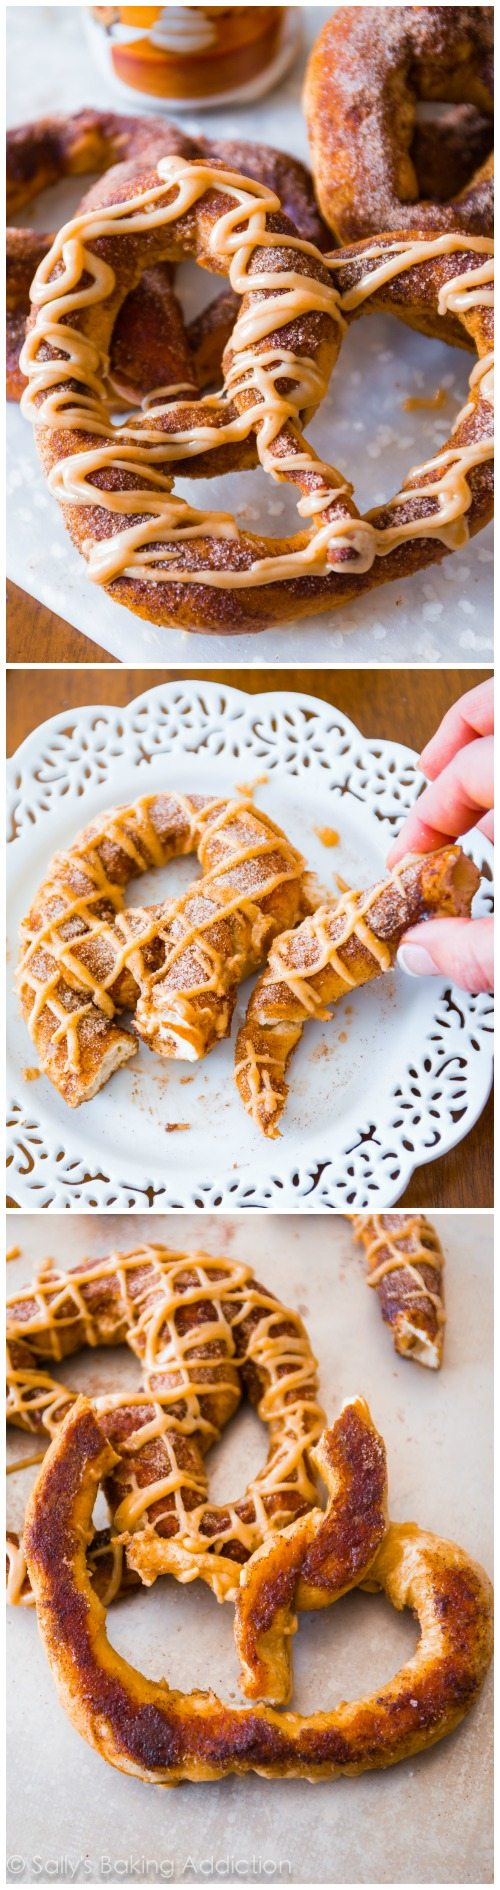 Homemade Pumpkin Pretzels - soft pretzels are so easy to make at home! Add a little pumpkin spice and a drizzle of sweet pumpkin praline glaze. These are SO good!